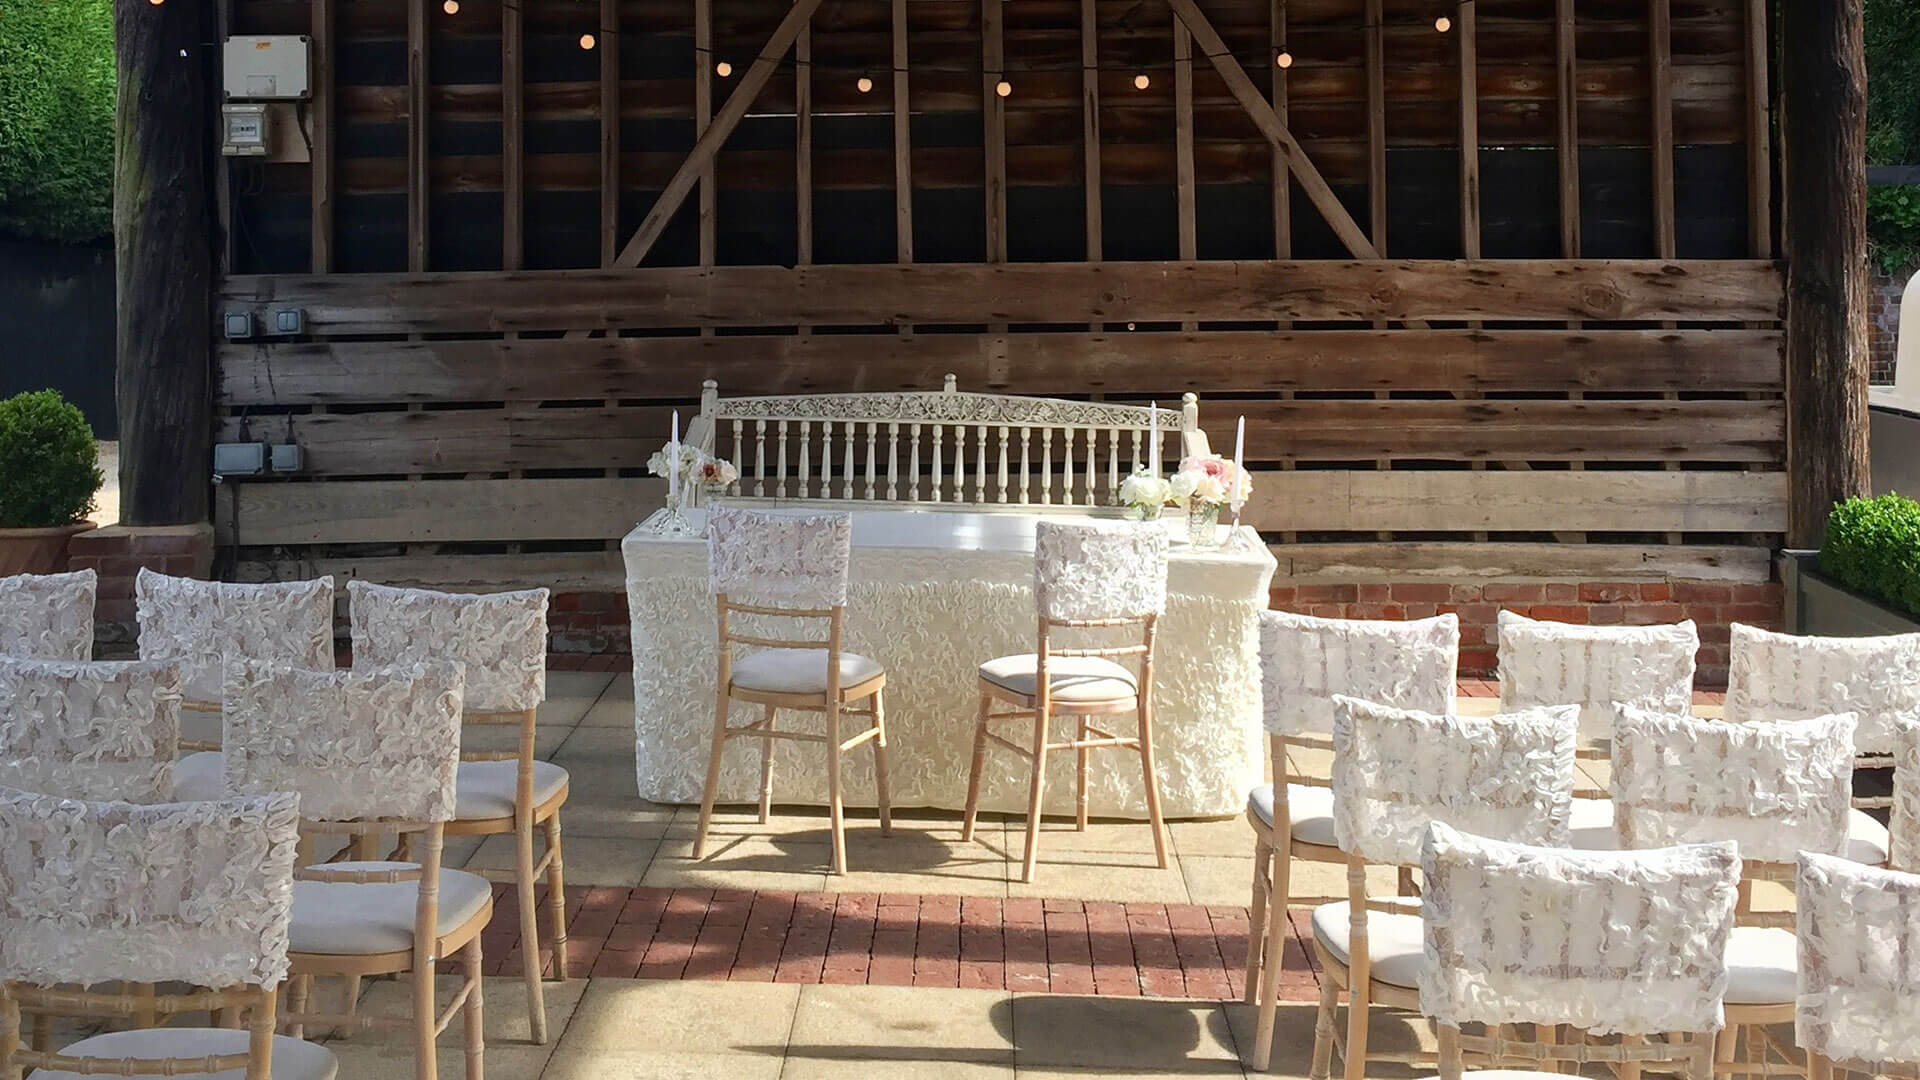 Beautiful lace wedding chair covers and white wedding theme looks stunning in the Gather Barn